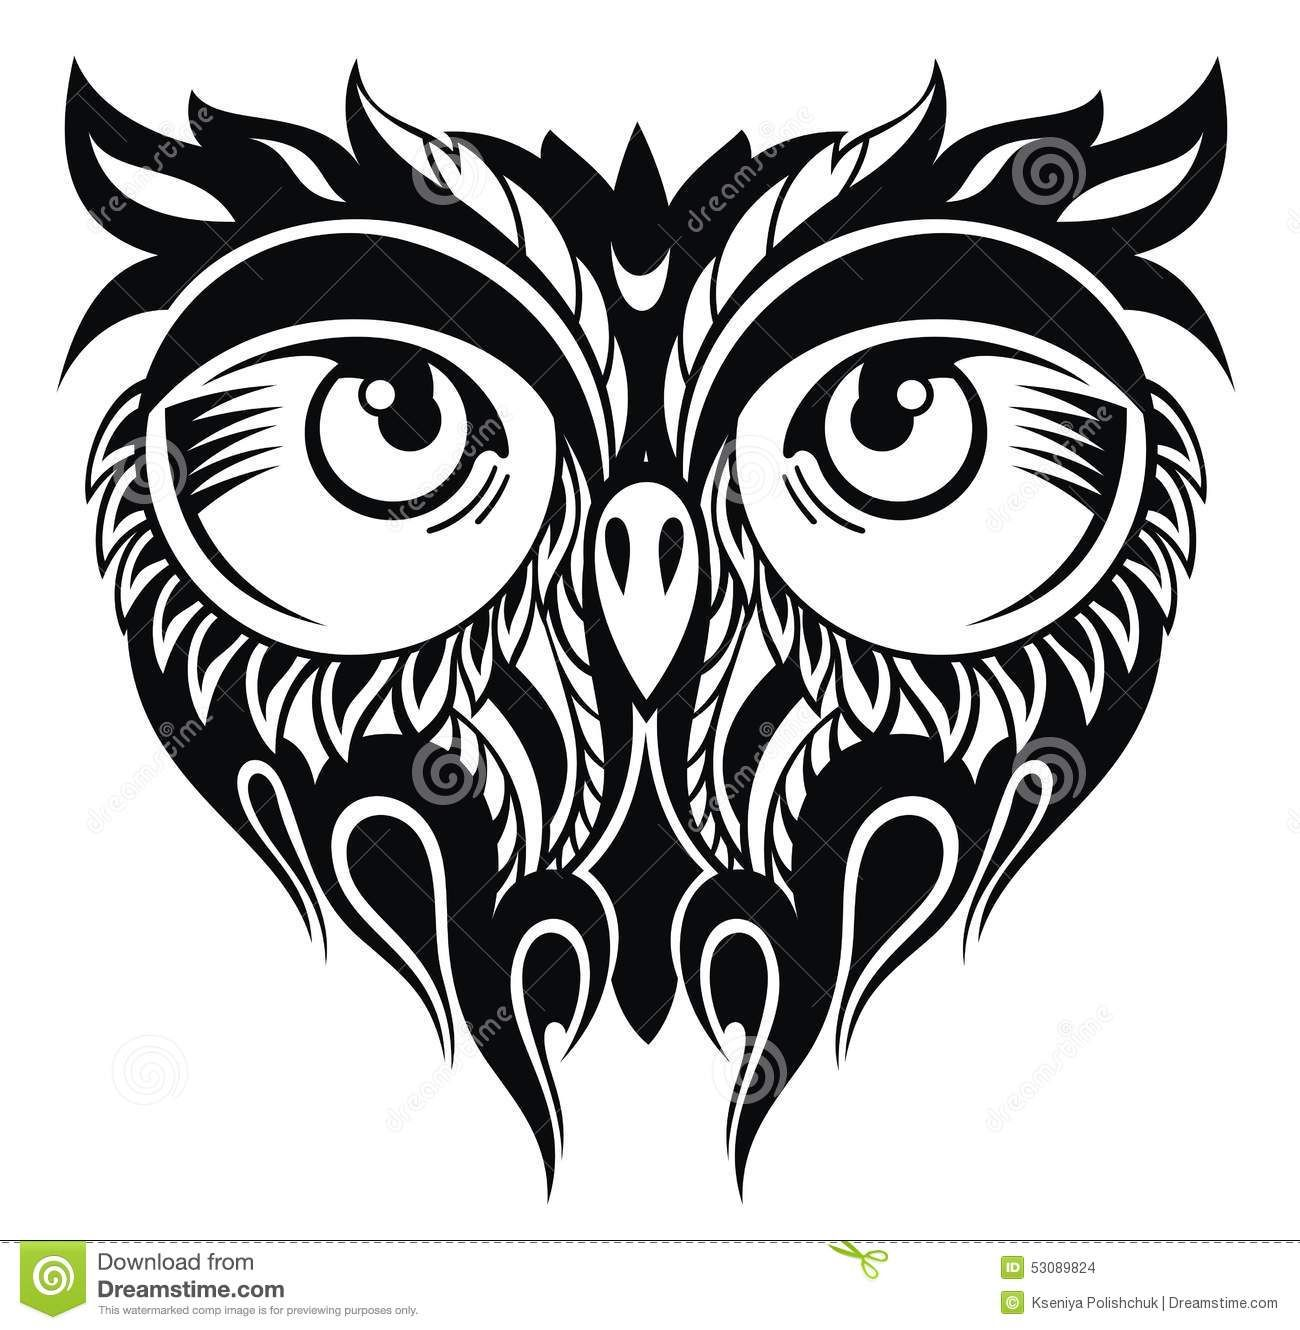 Owl In Tattoo  Style - Download From Over 38 Million High Quality Stock Photos, Images, Vectors. Sign up for FREE today. Image: 53089824